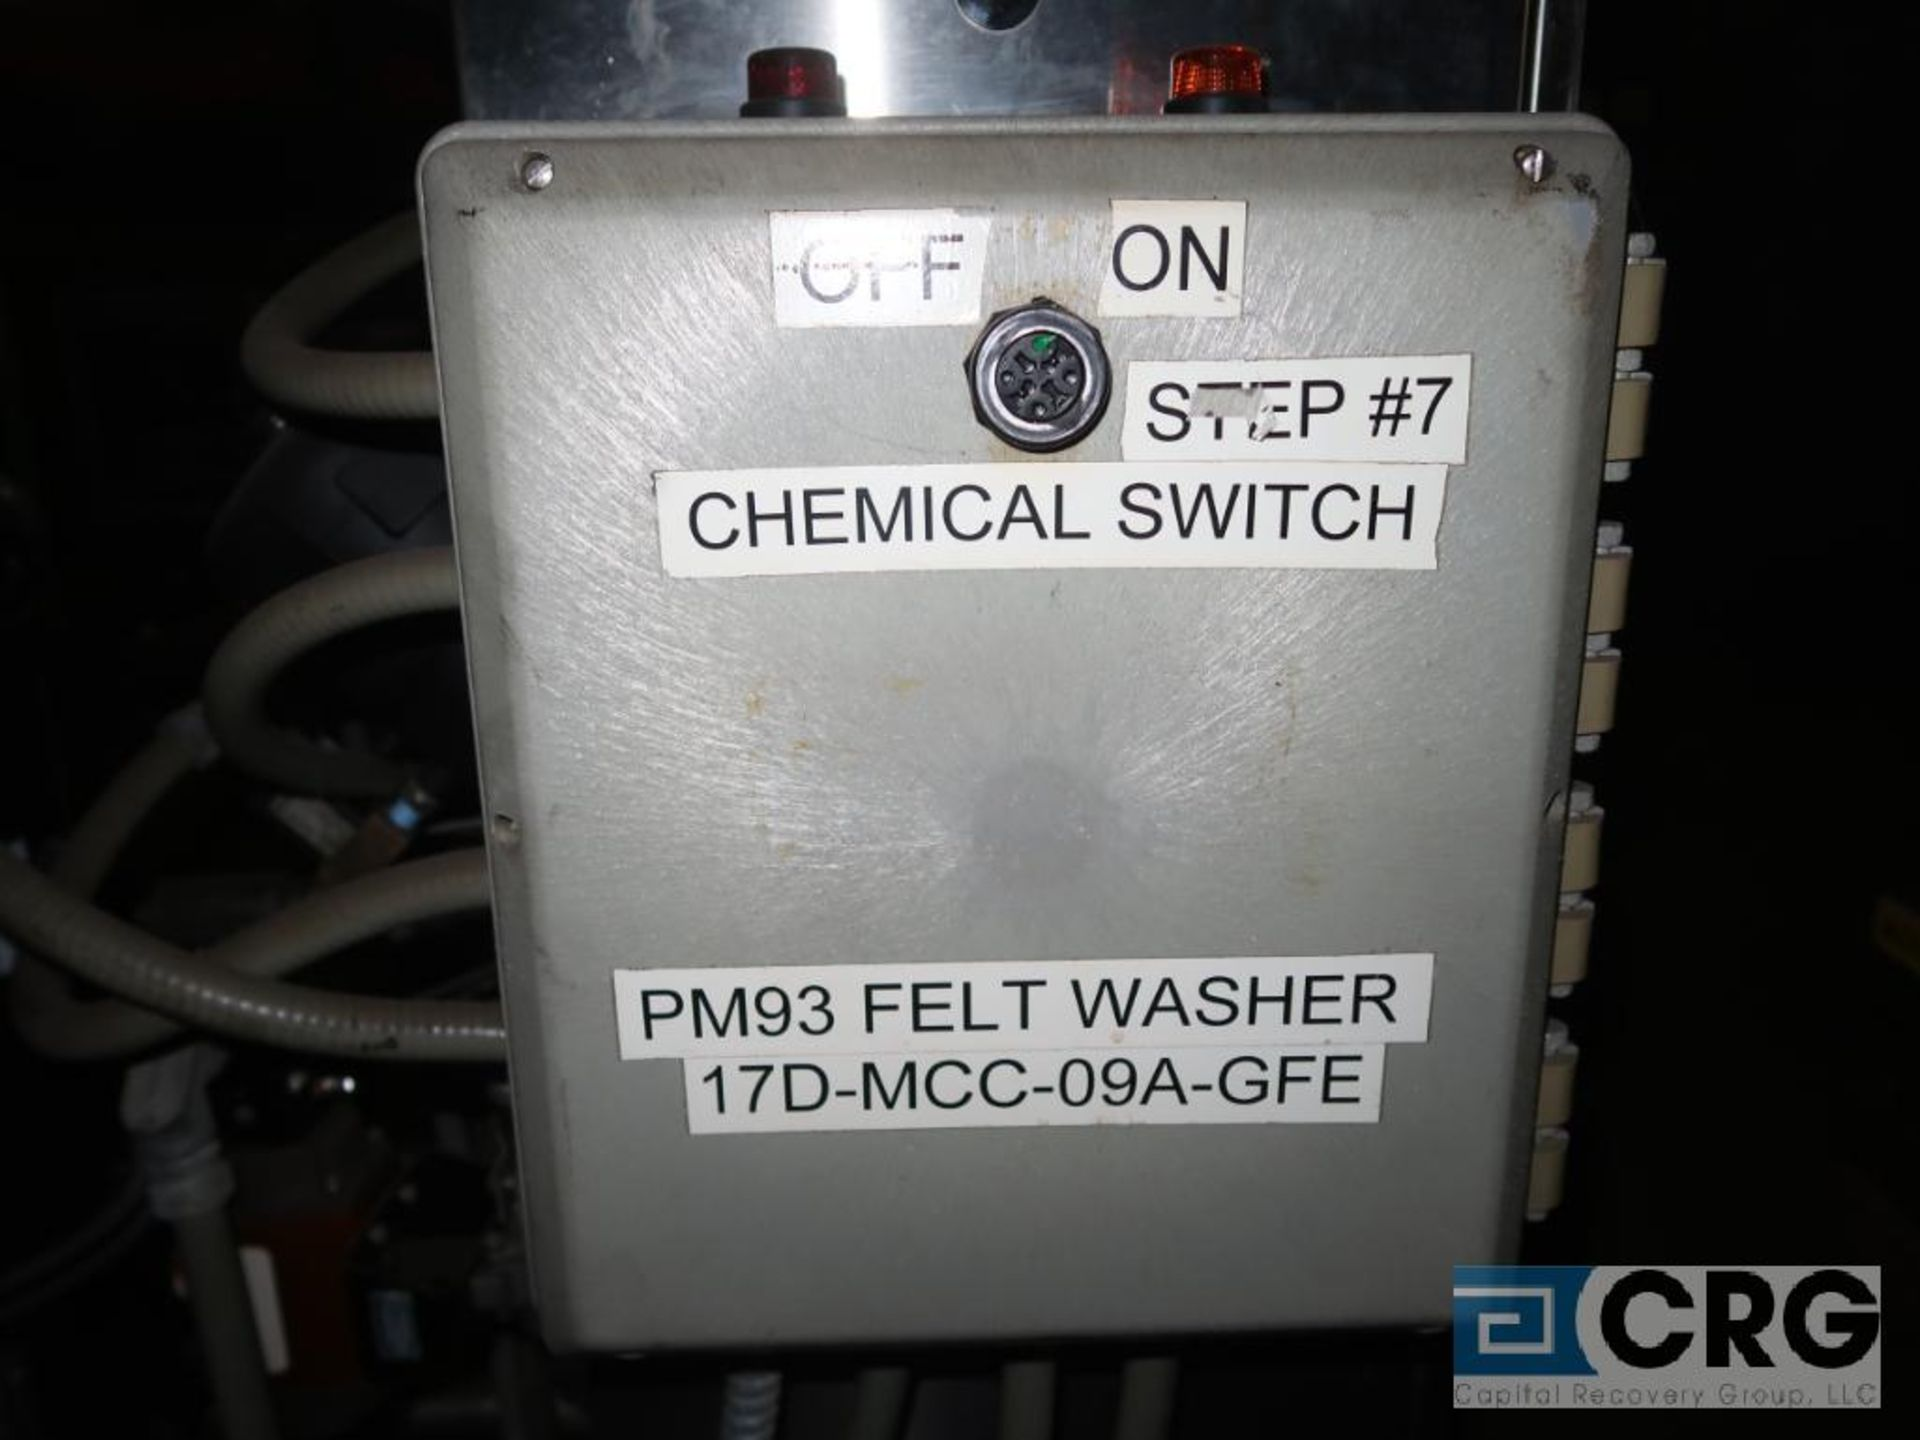 HCT FB100 high pressure hot water system, s/n 000021 (Off Site Warehouse) - Image 3 of 3